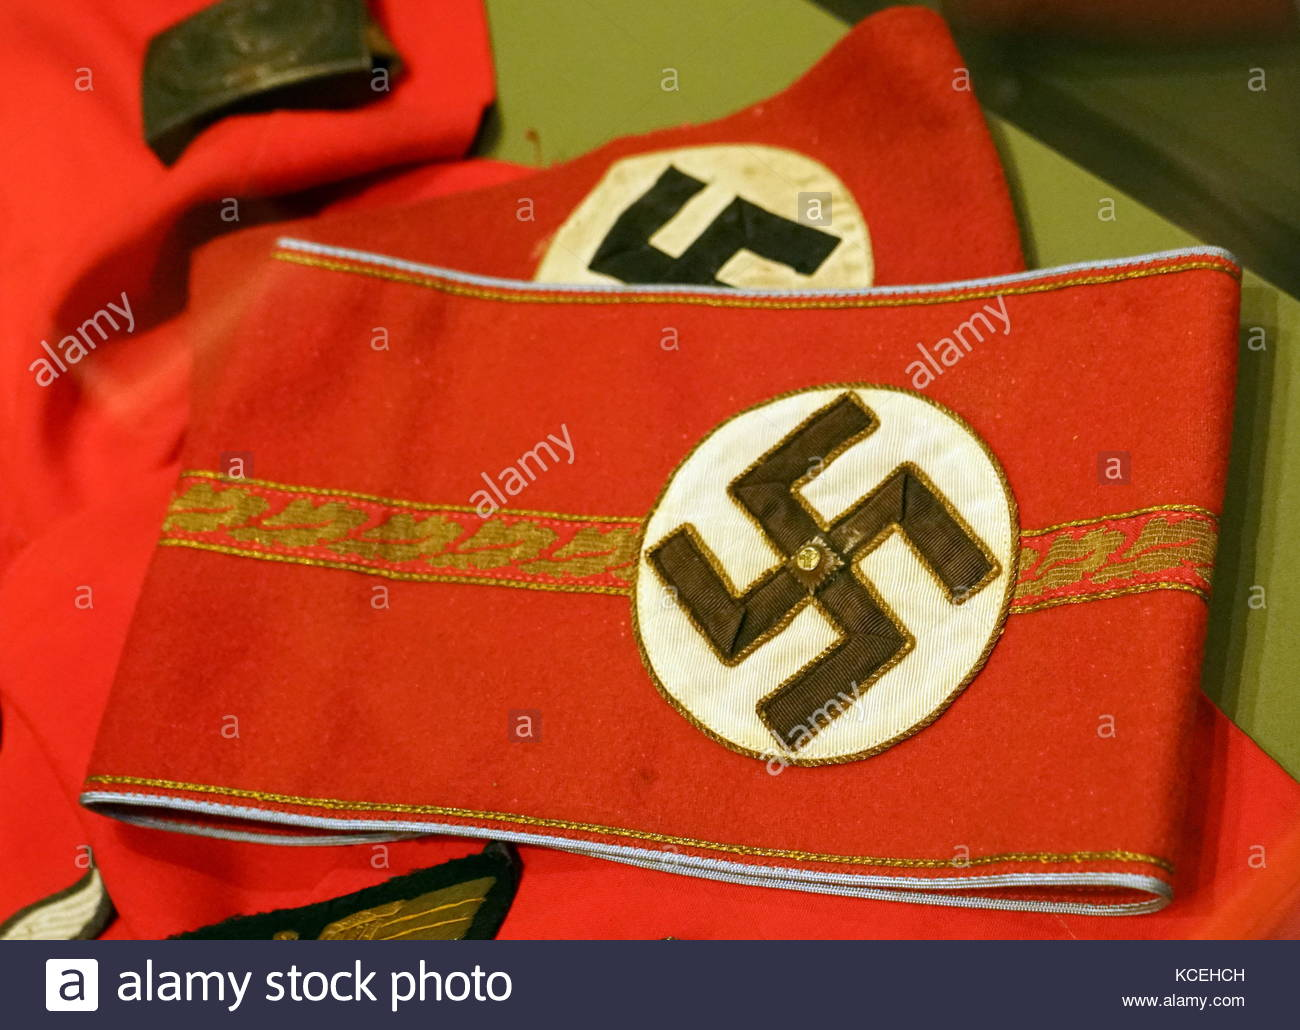 Nazi symbol stock photos nazi symbol stock images alamy german nazi armband captured during the liberation of france in world war two stock biocorpaavc Gallery